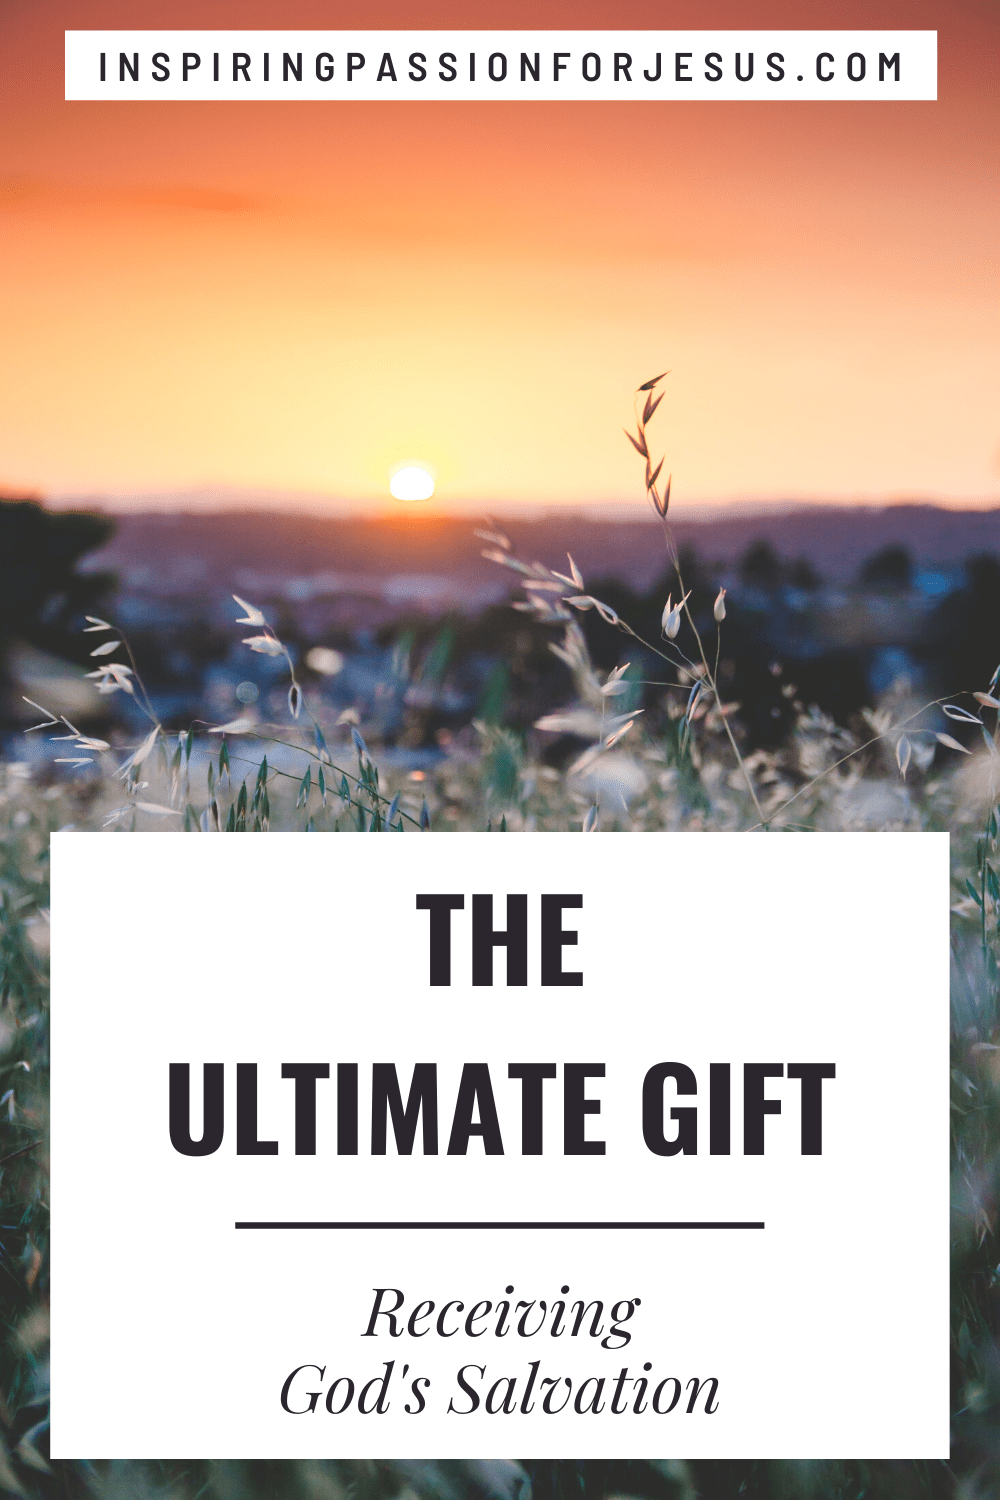 The Ultimate Gift - Receiving God's Salvation